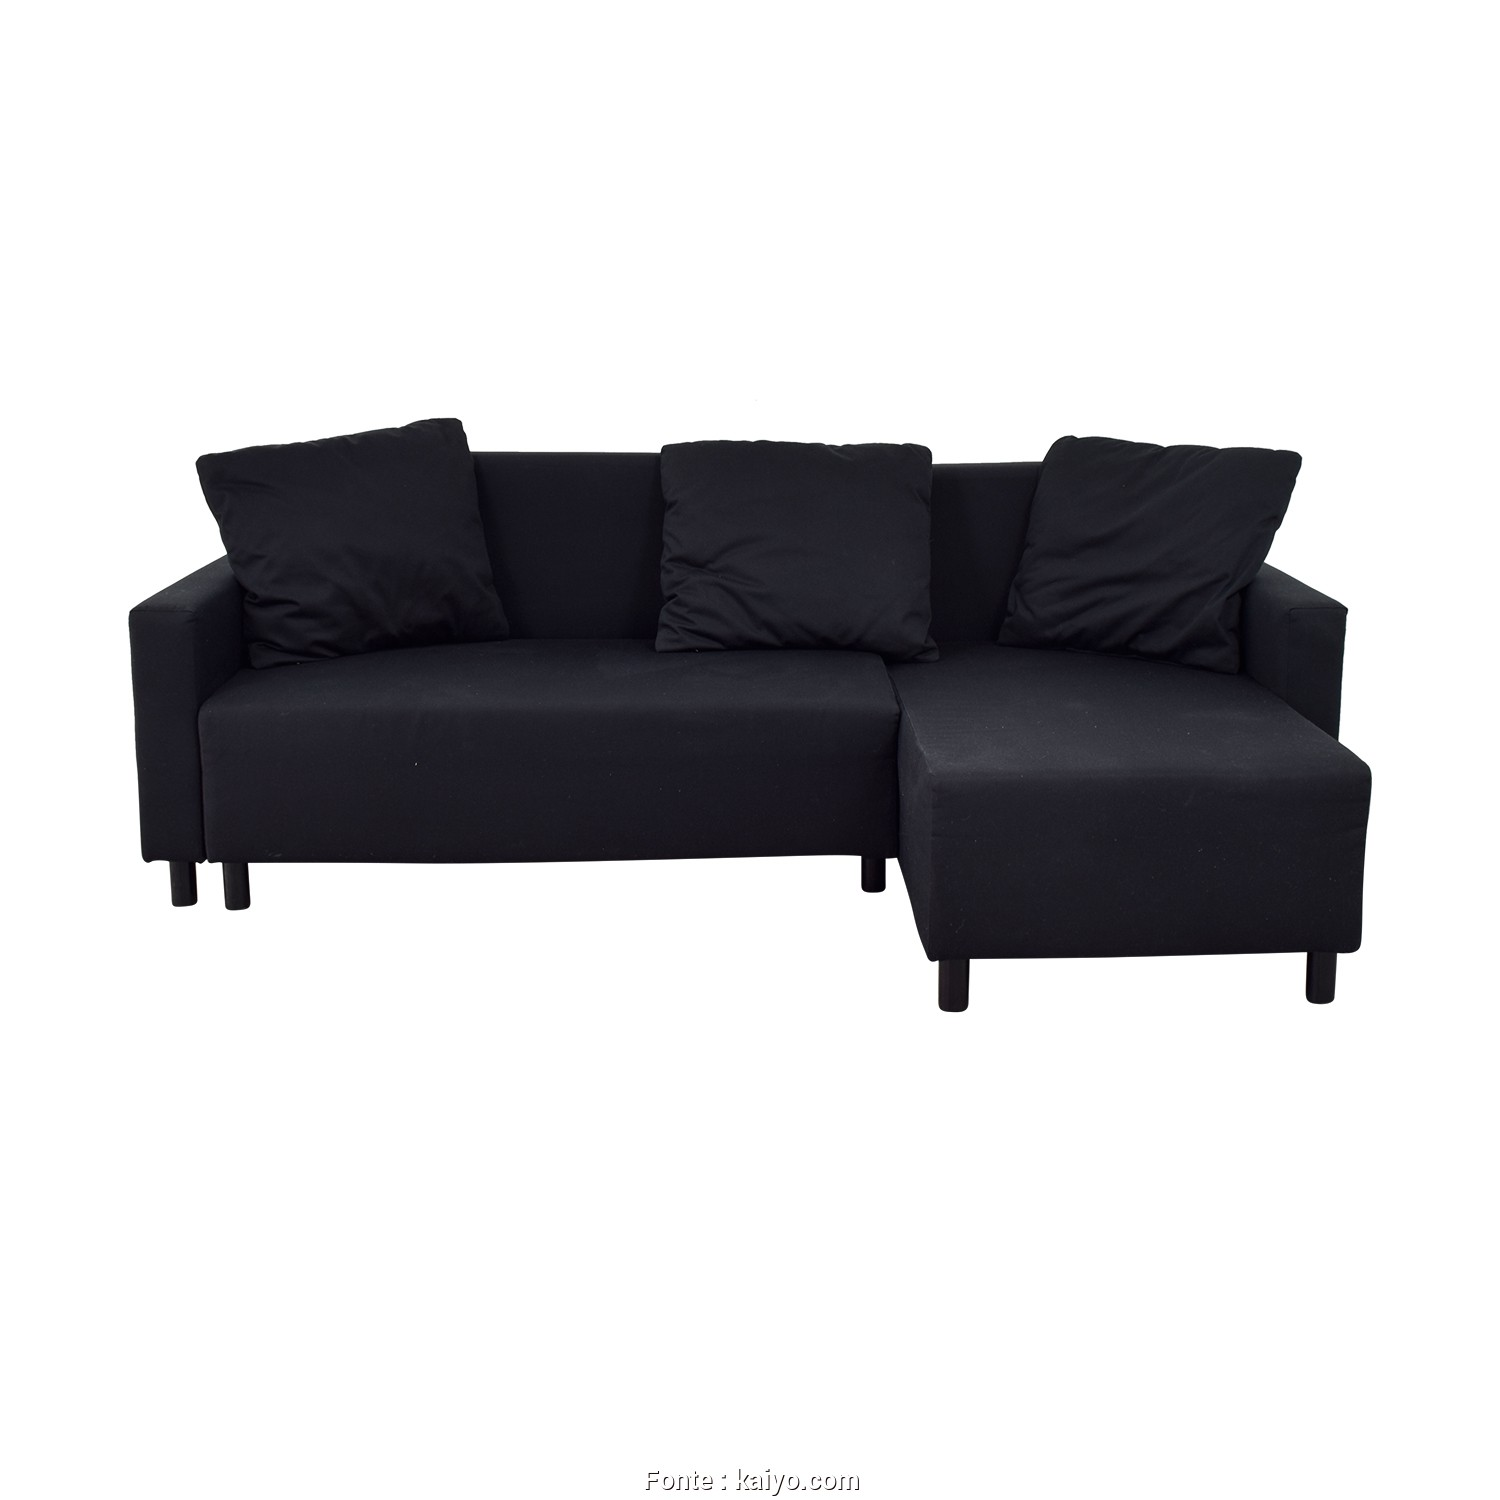 Futon Ikea Balkarp, Classy IKEA IKEA Black Sleeper Chaise Sectional With Storage Used